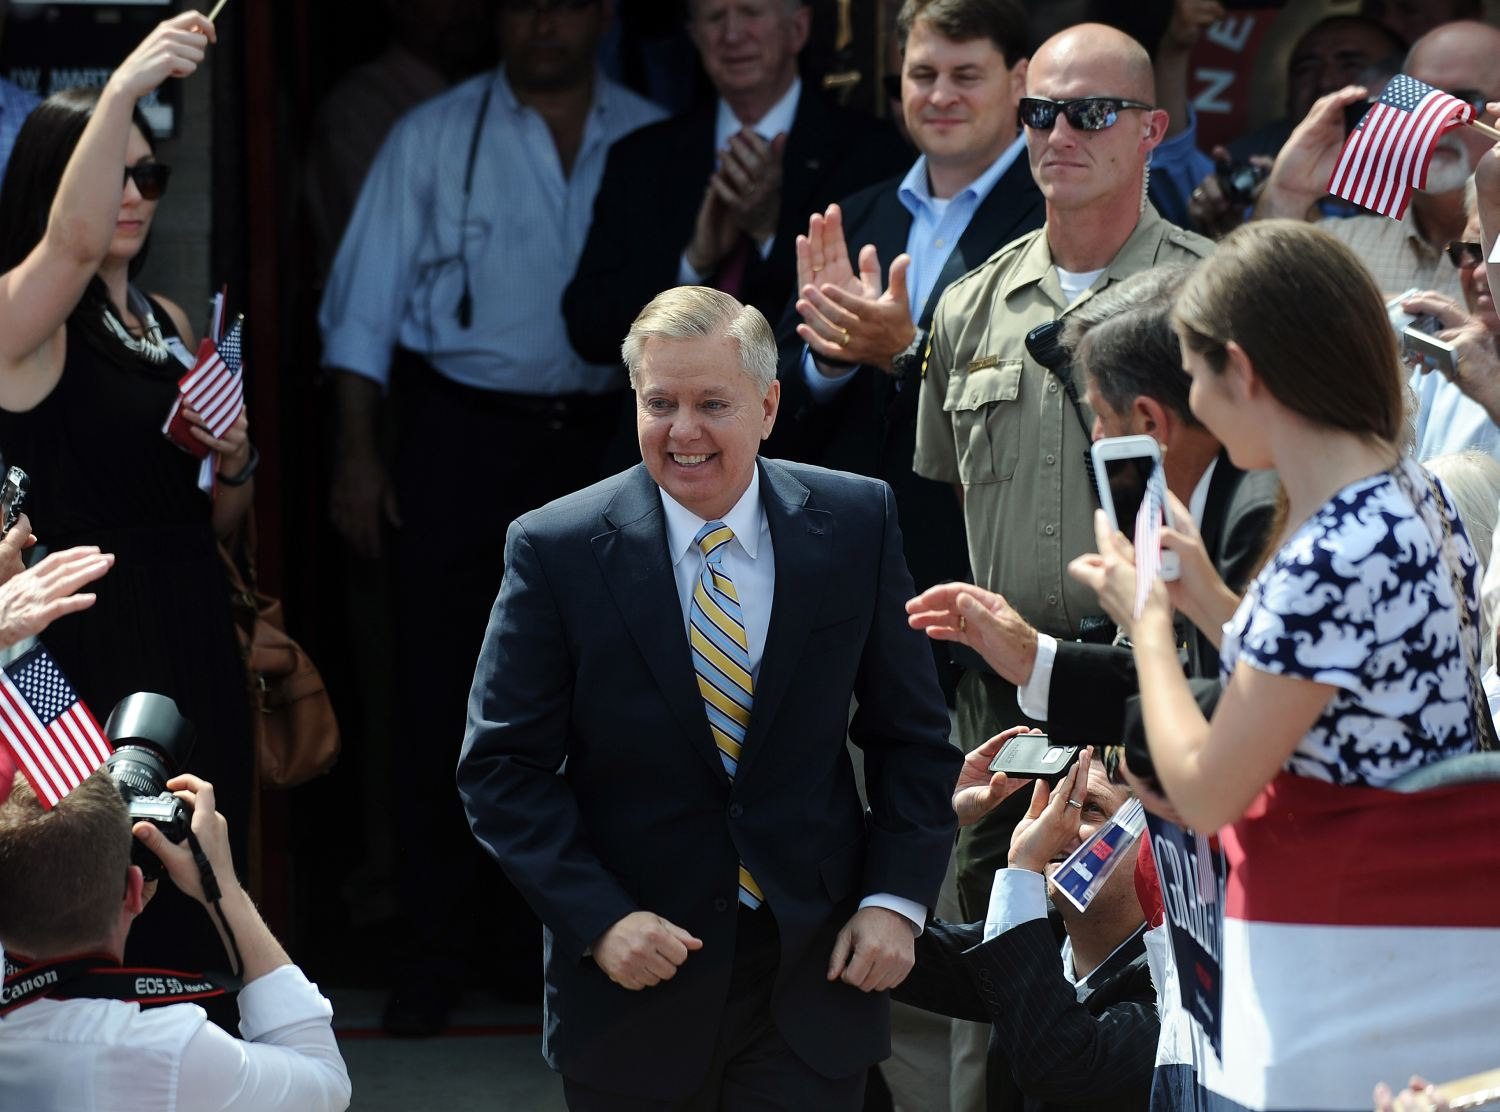 U.S. Sen. Lindsey Graham announces his bid for the presidency on June 1, 2015, in Central, S.C. (AP Photo)